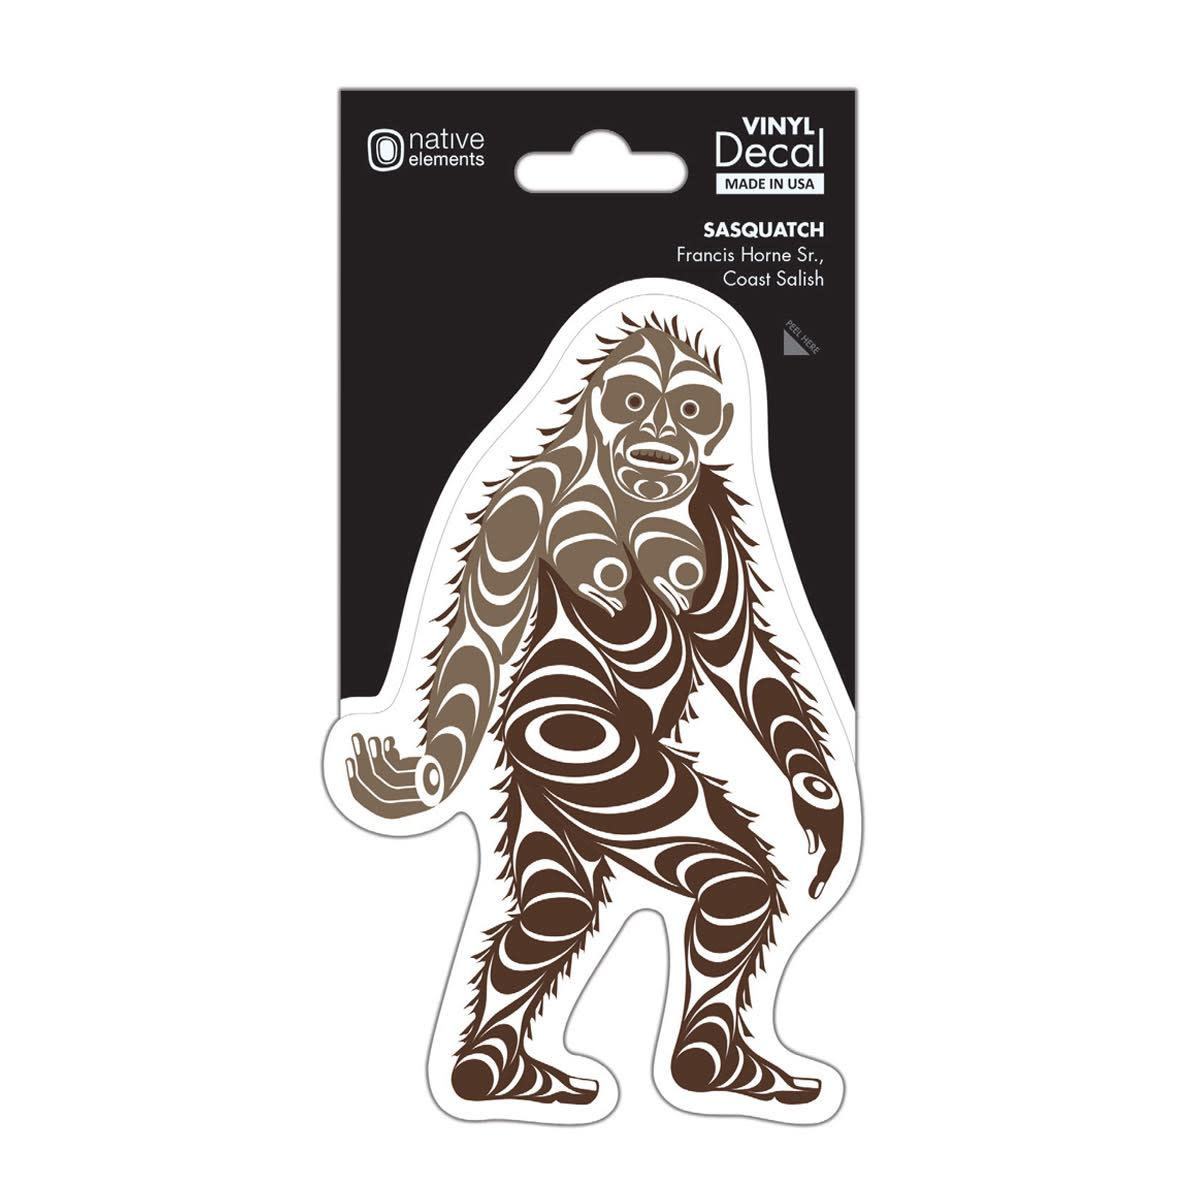 Premium Decal - Sasquatch by Francis Horne Sr.-1